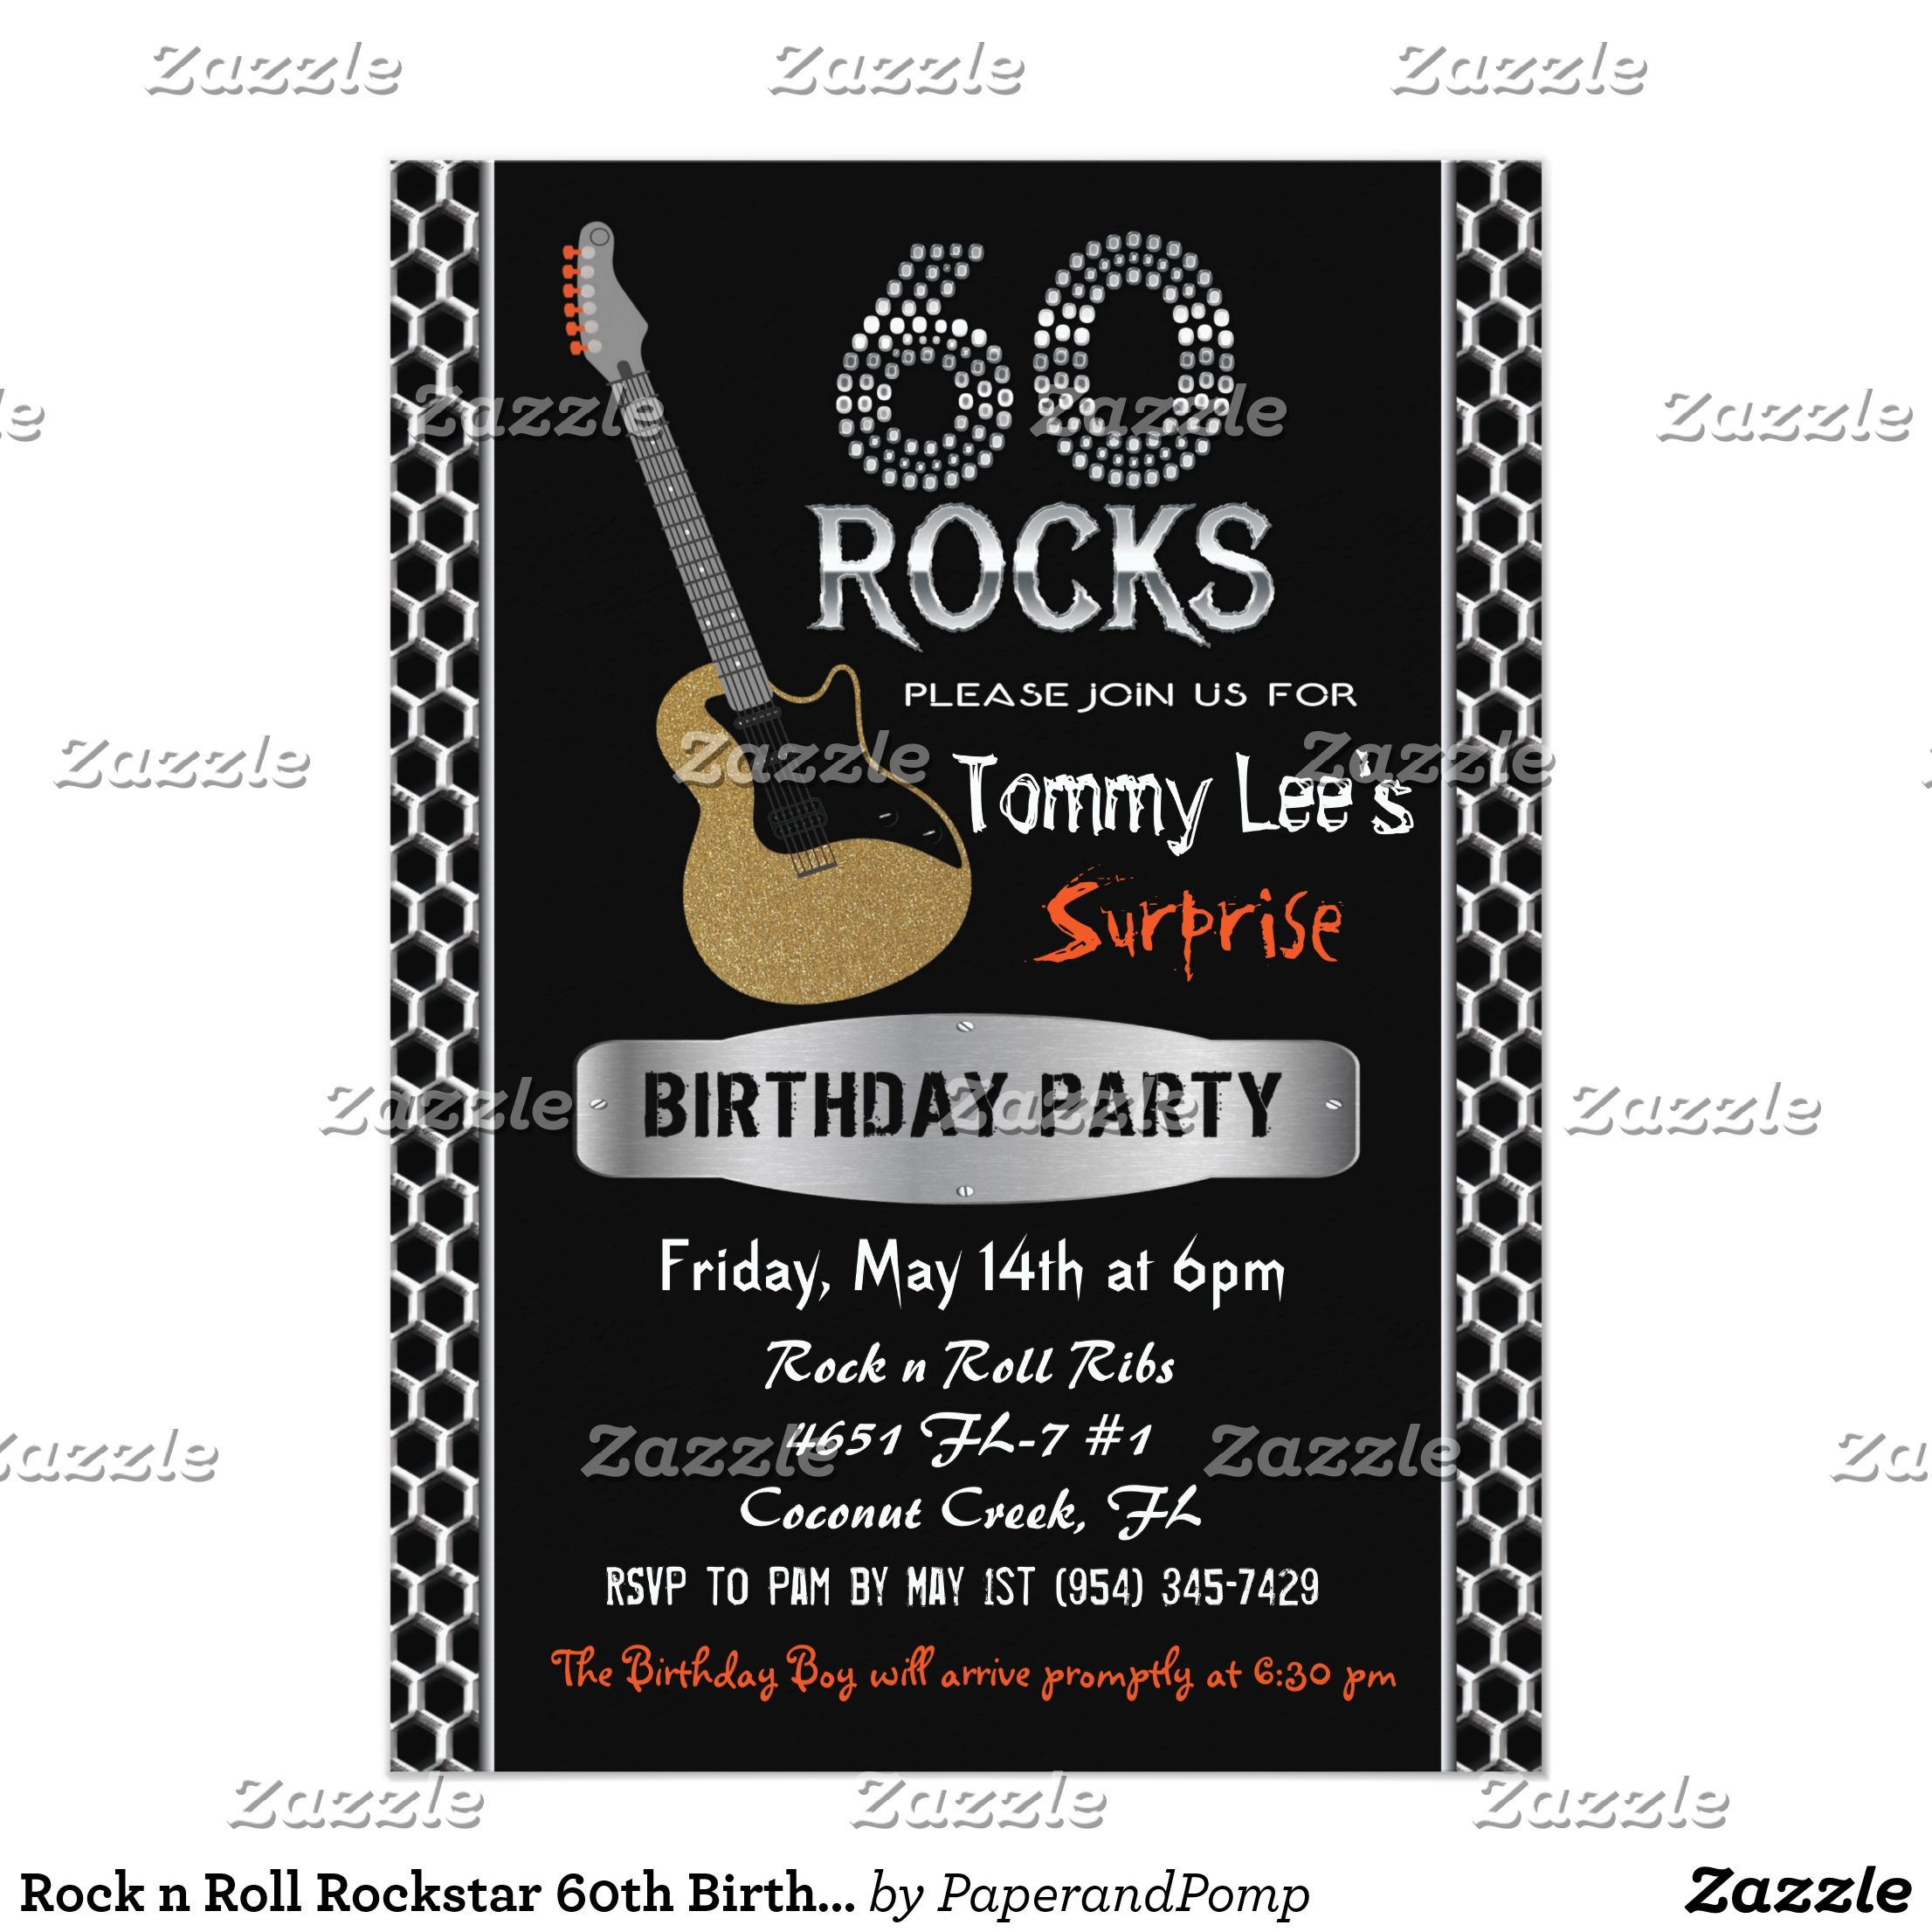 Rock n Roll Rockstar 60th Birthday Invitation | 60th birthday ...